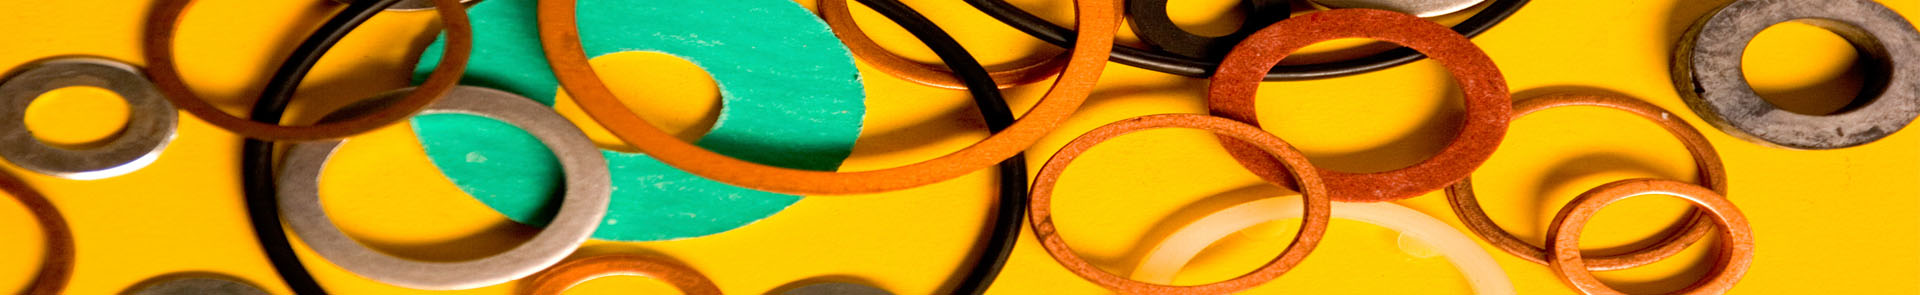 Colored rings on a yellow surface